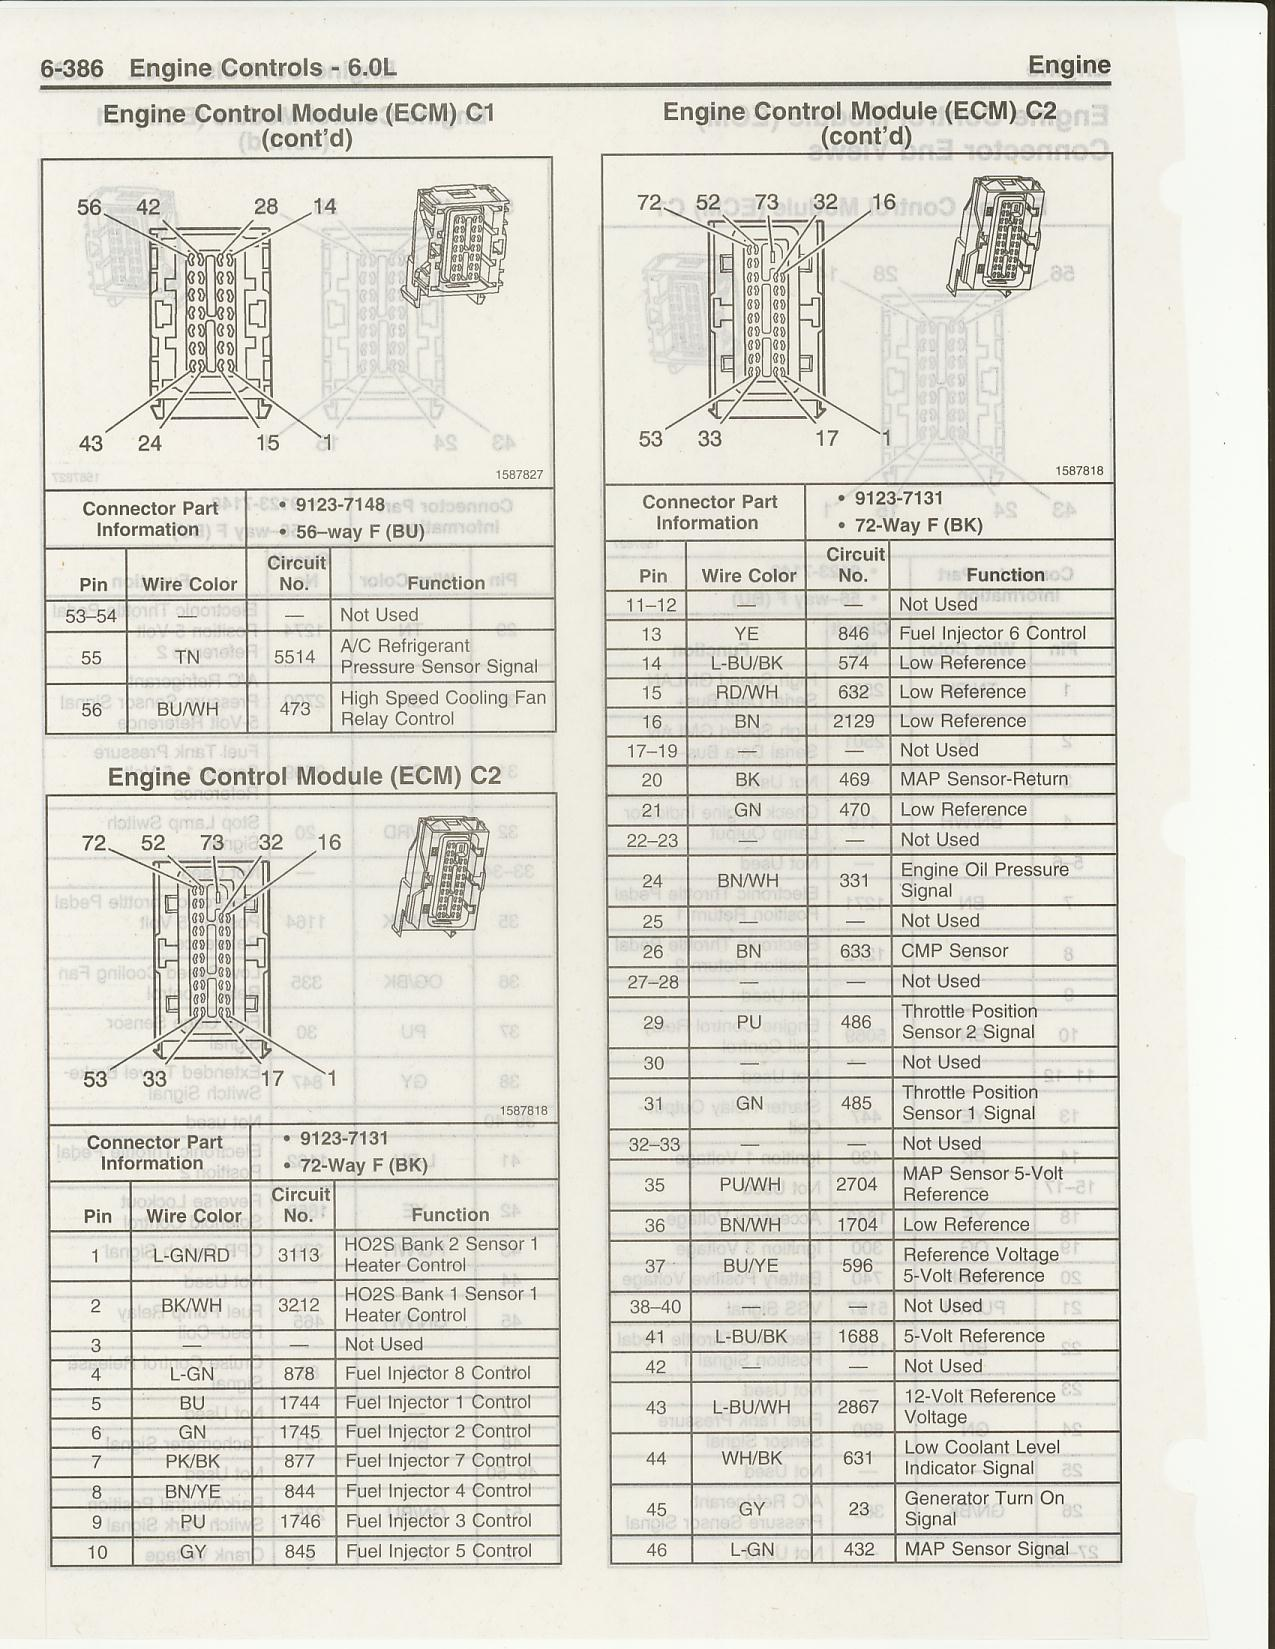 Gmc Denali Wiring Diagram Will Be A Thing 2002 Corvette How To Make Stand Alone Harness For My Ls2 2003